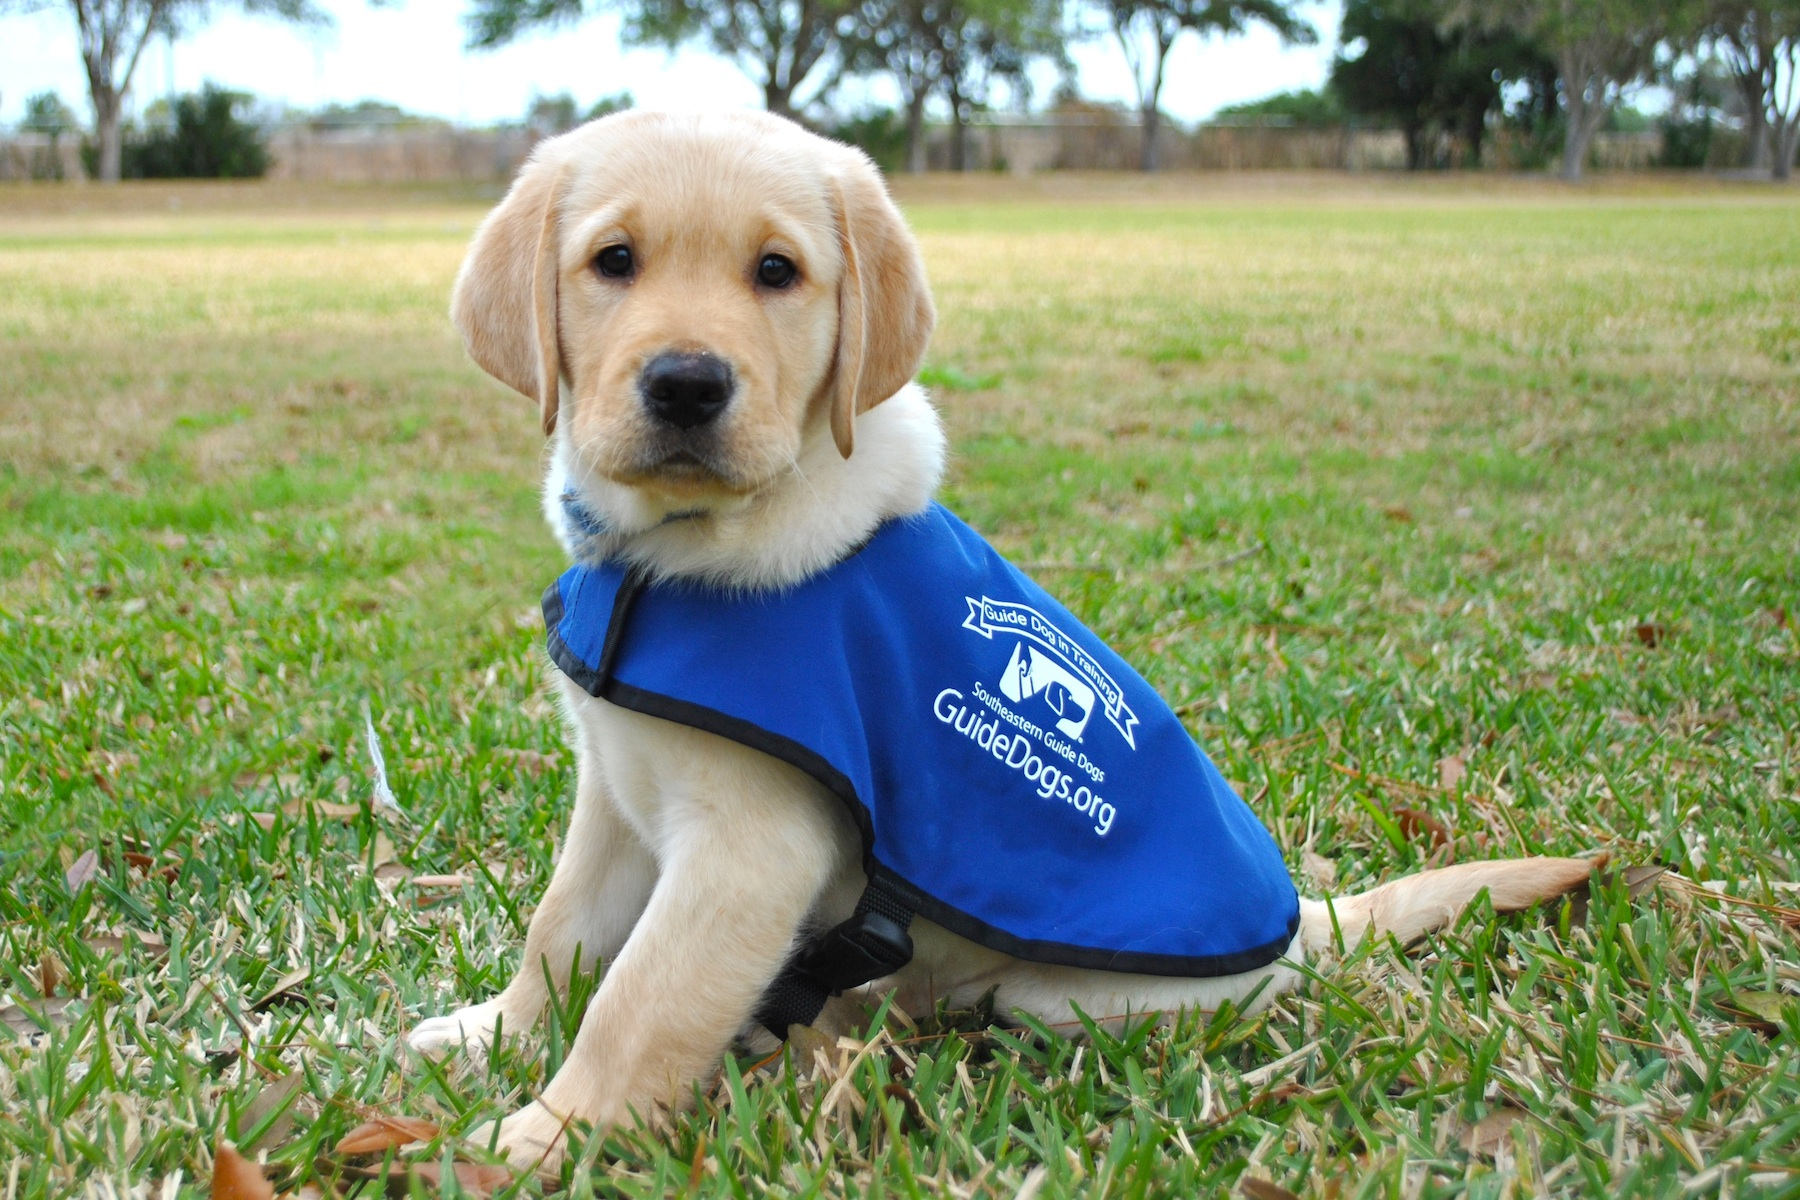 Labrador guide dogs graduation day with puppy show in sydney.